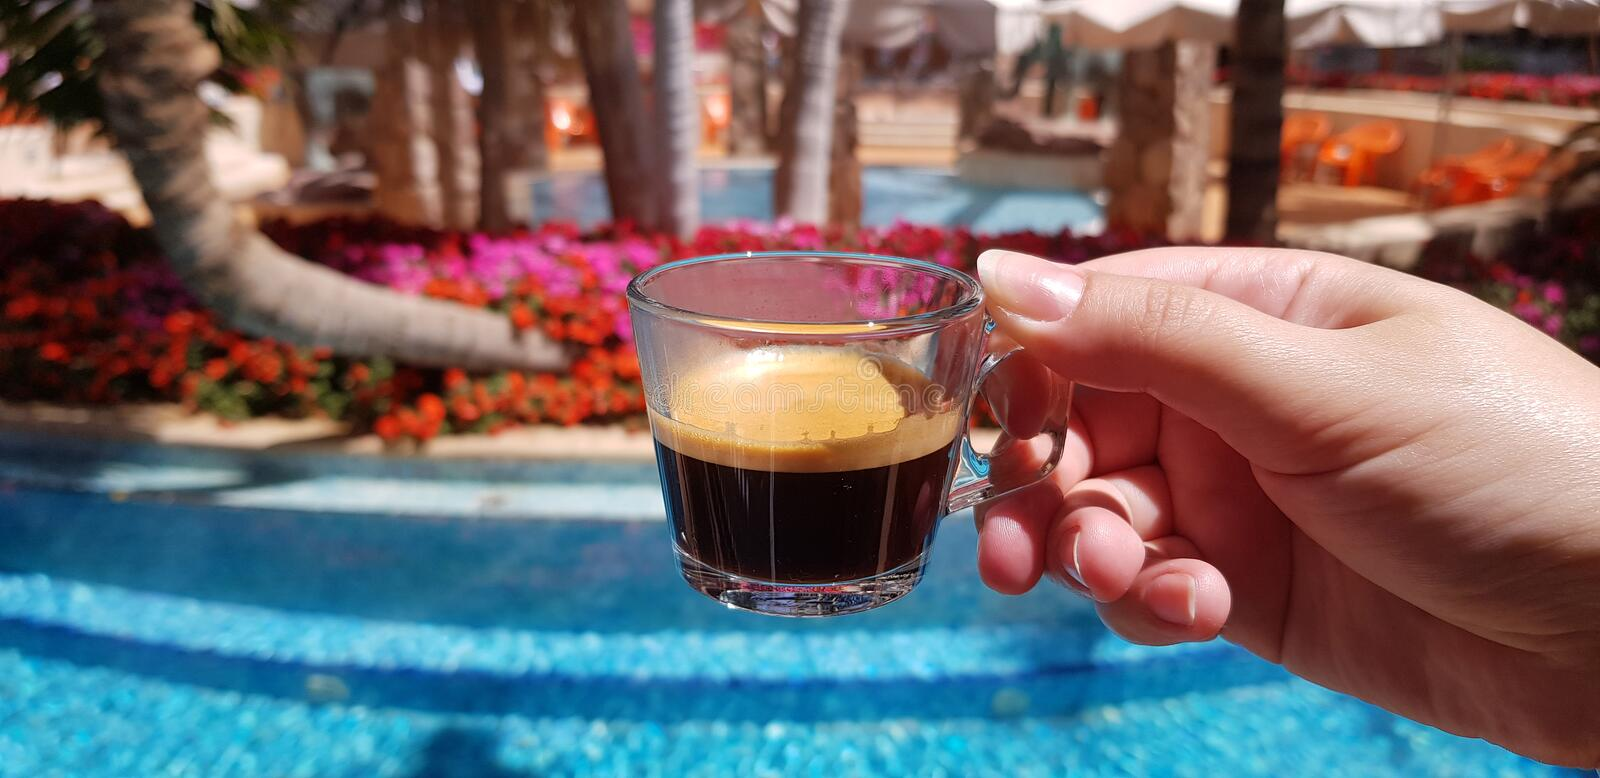 Coffee cup made from transparent glass in female hand against blue outdoor pool stock images